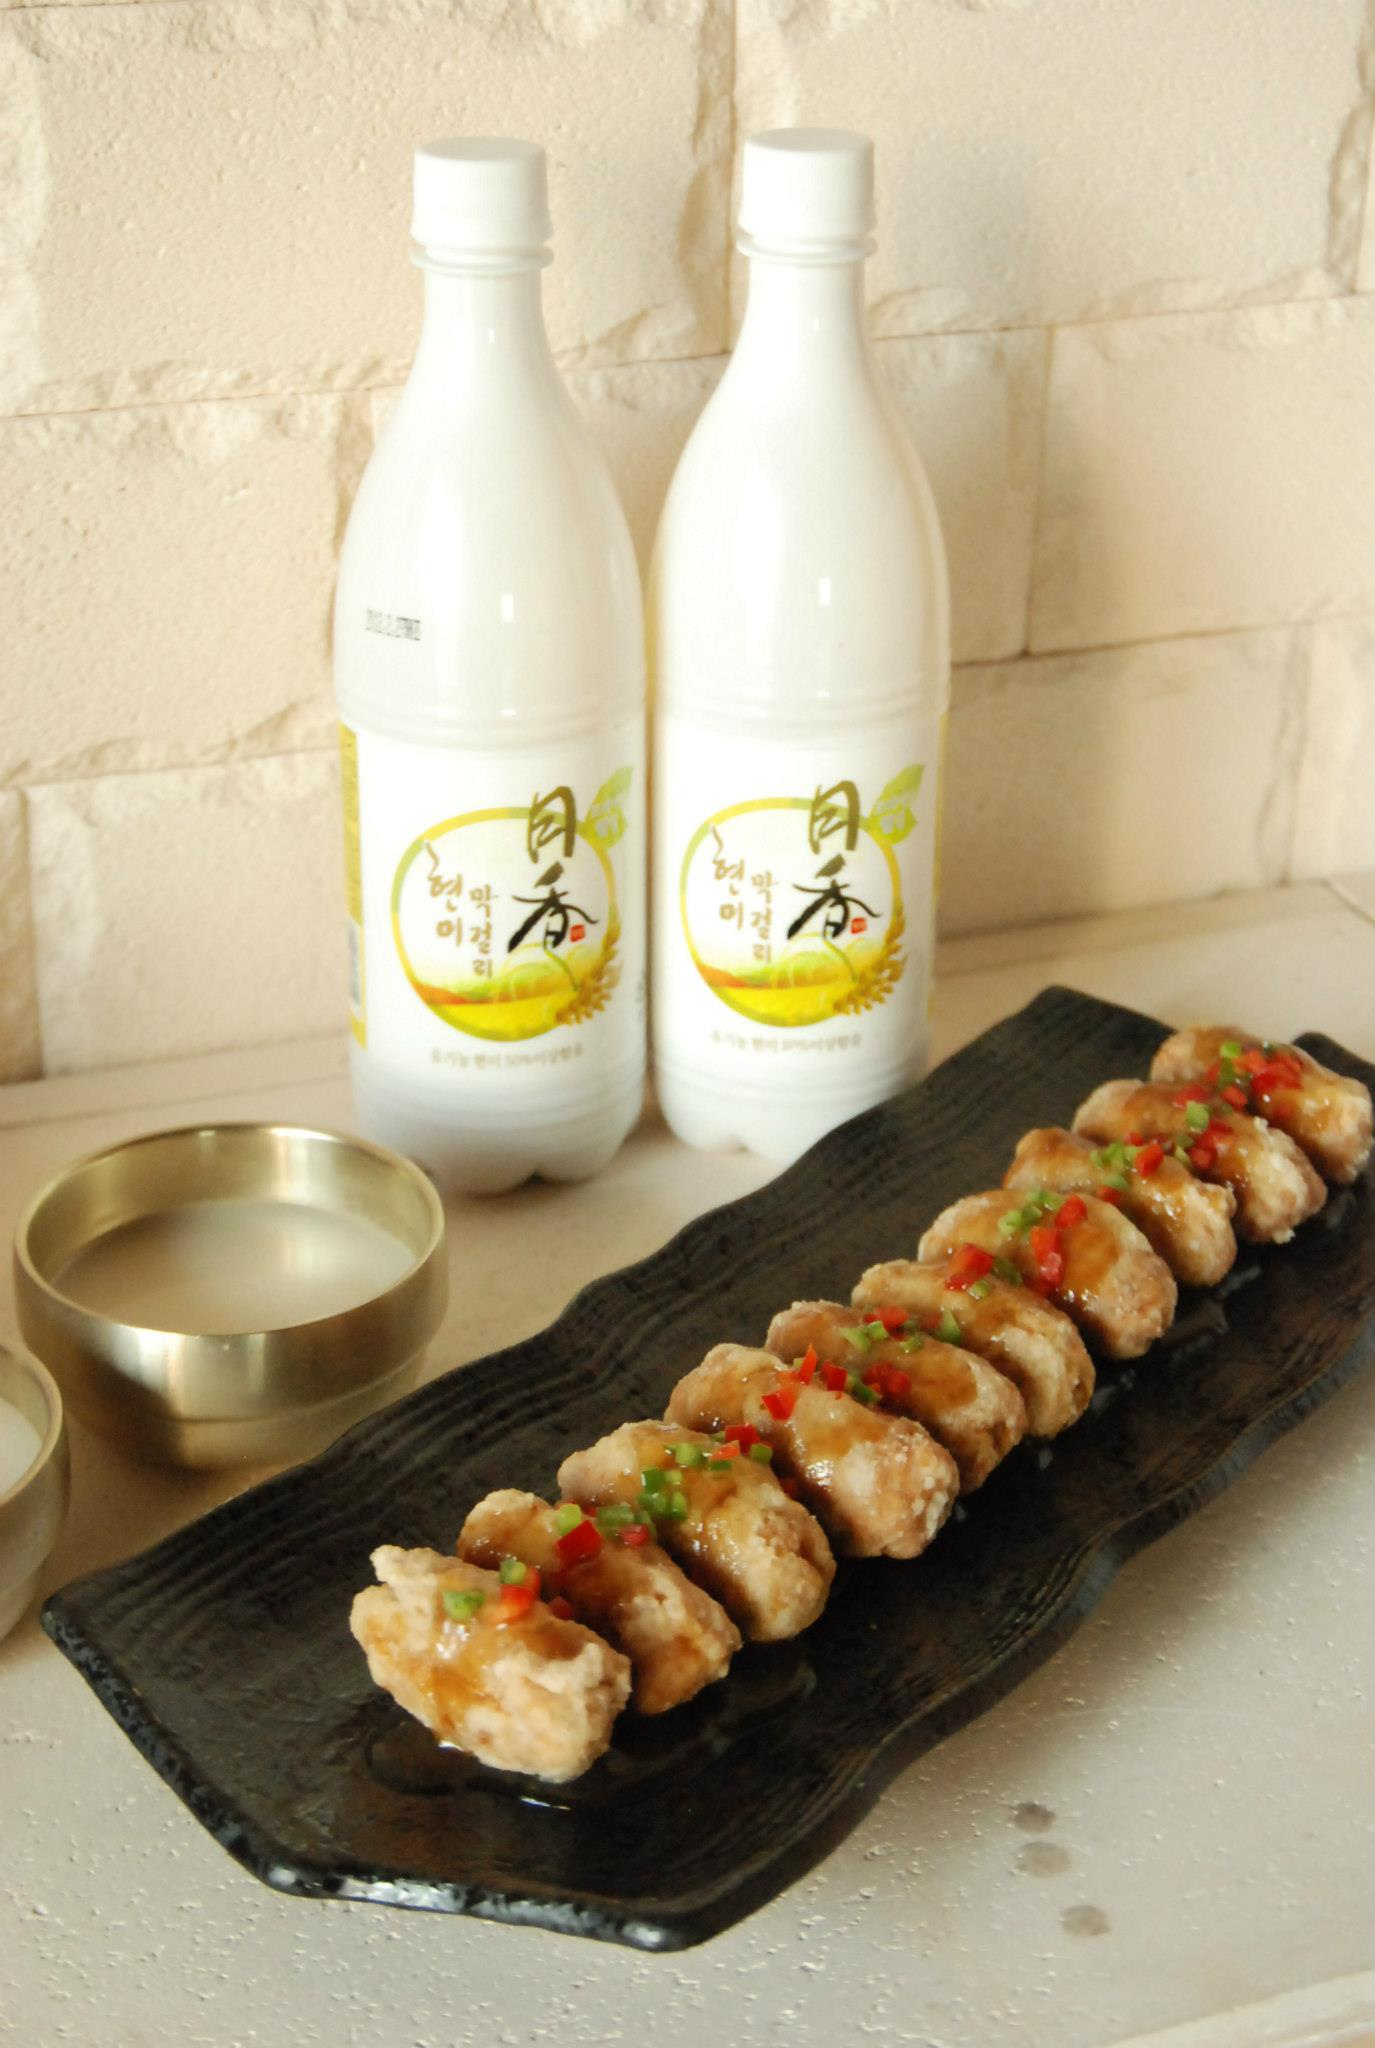 Wolhyang's signature makgeolli rice wine with tang suyuuk or sweet and sour pork.